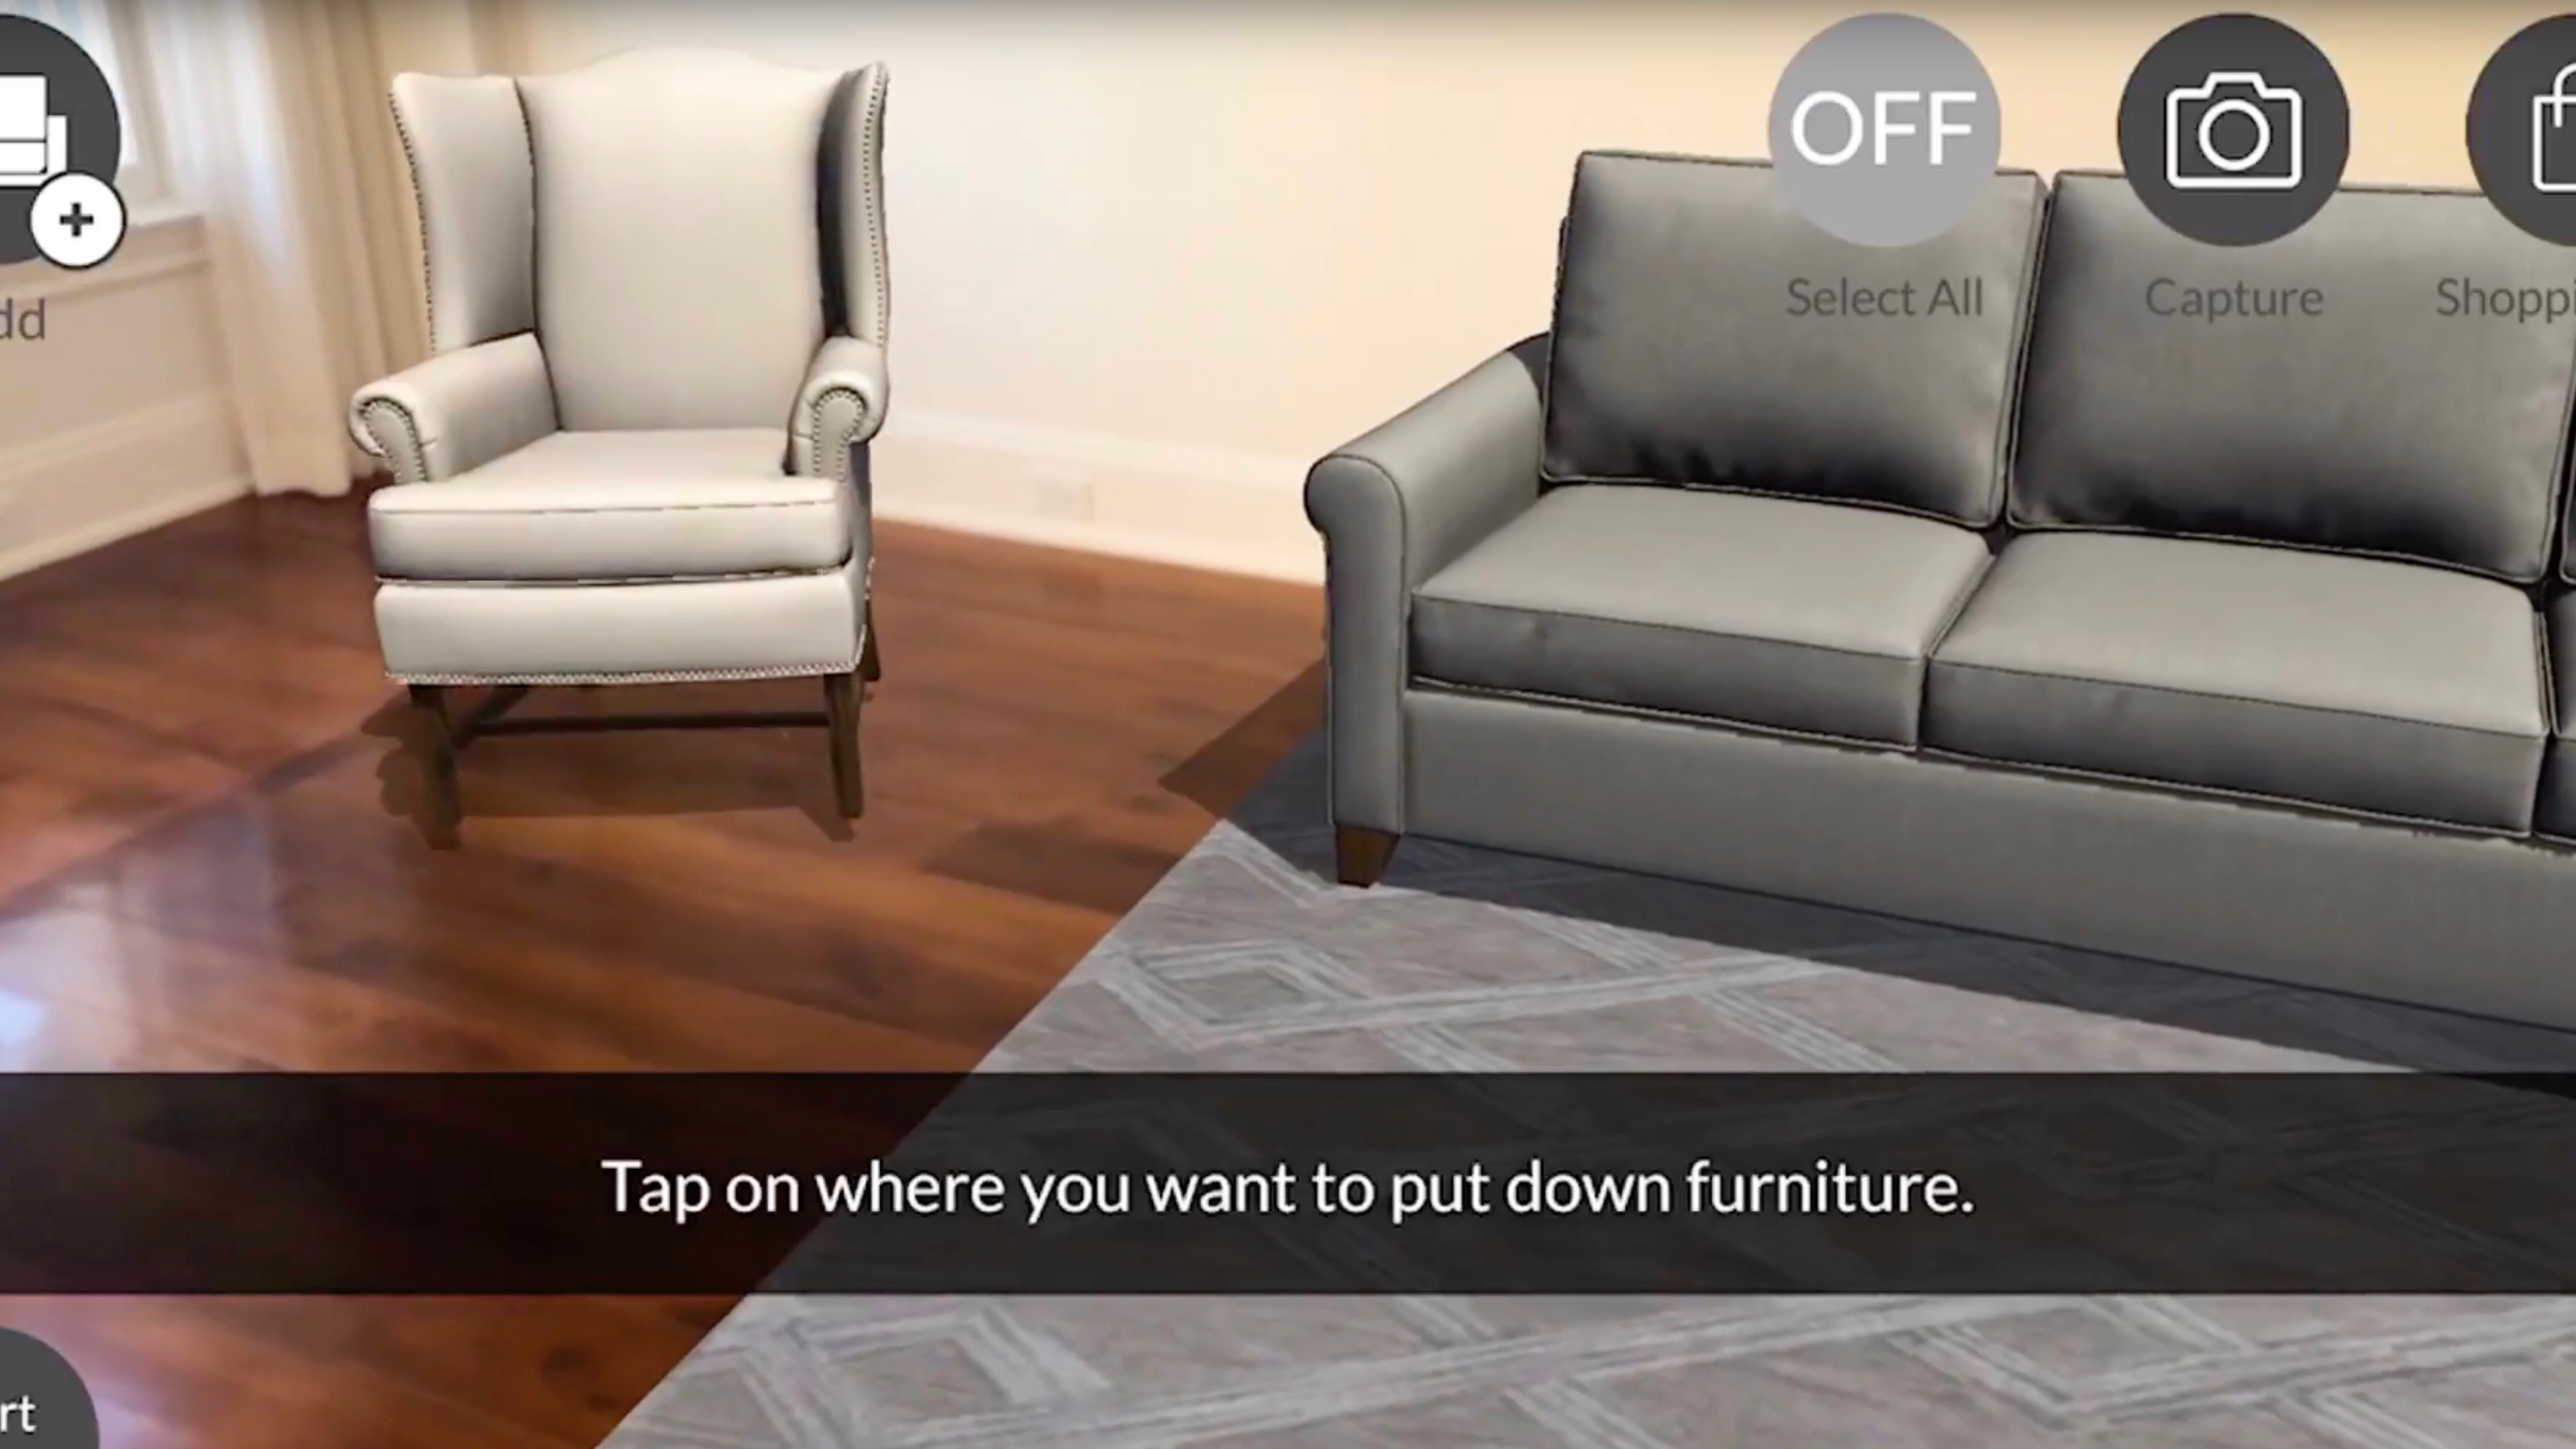 Pottery Barn Launches New Ar App For Easily Visualizing Furniture In Your Home 9to5mac